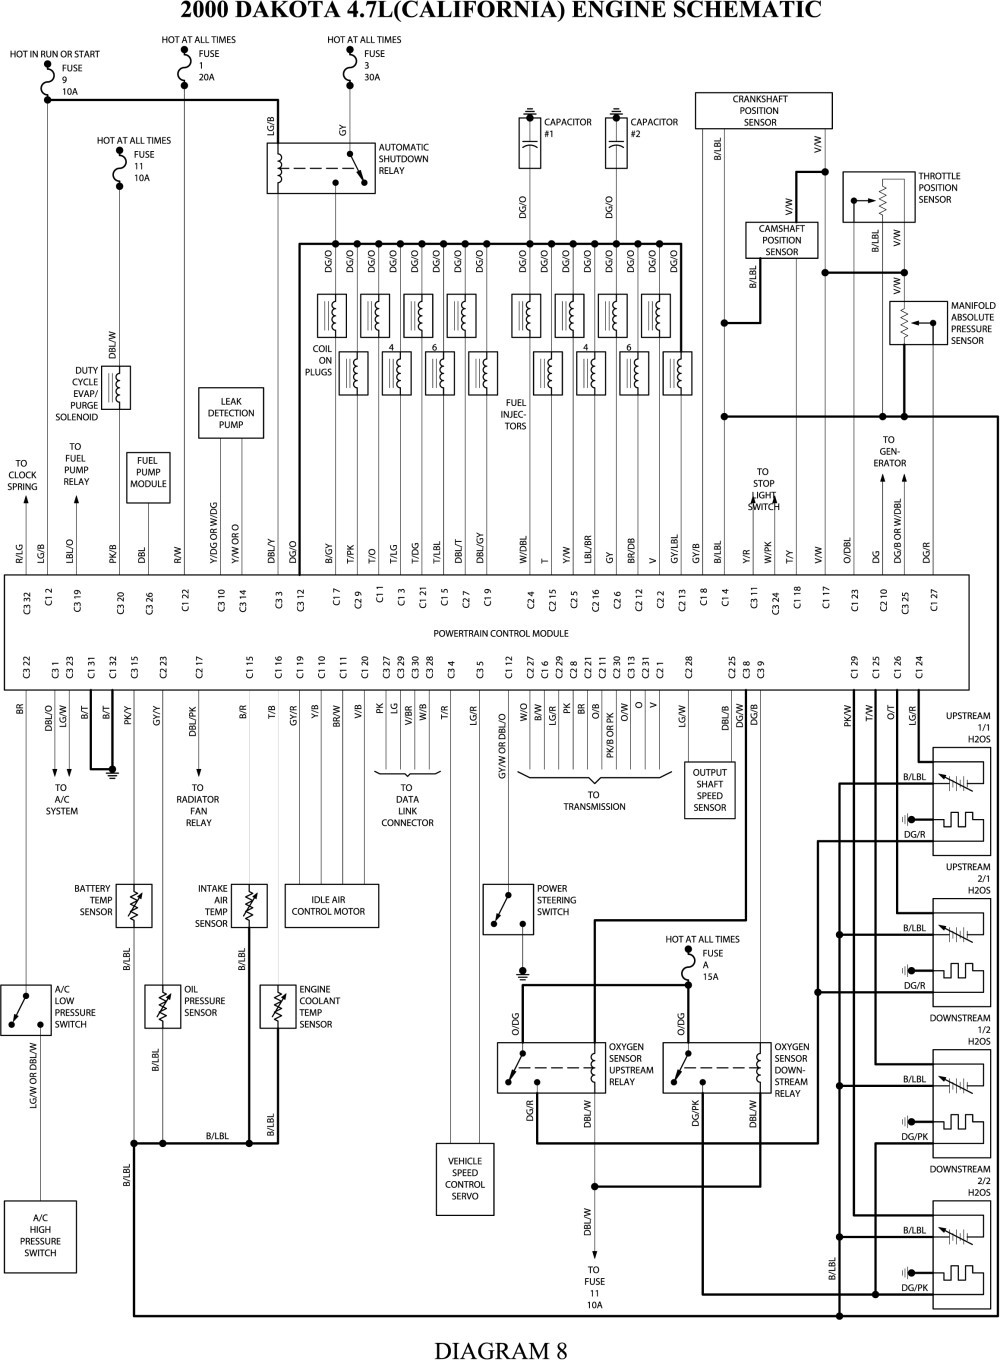 Kenworth T600 Wiring Diagram from mainetreasurechest.com